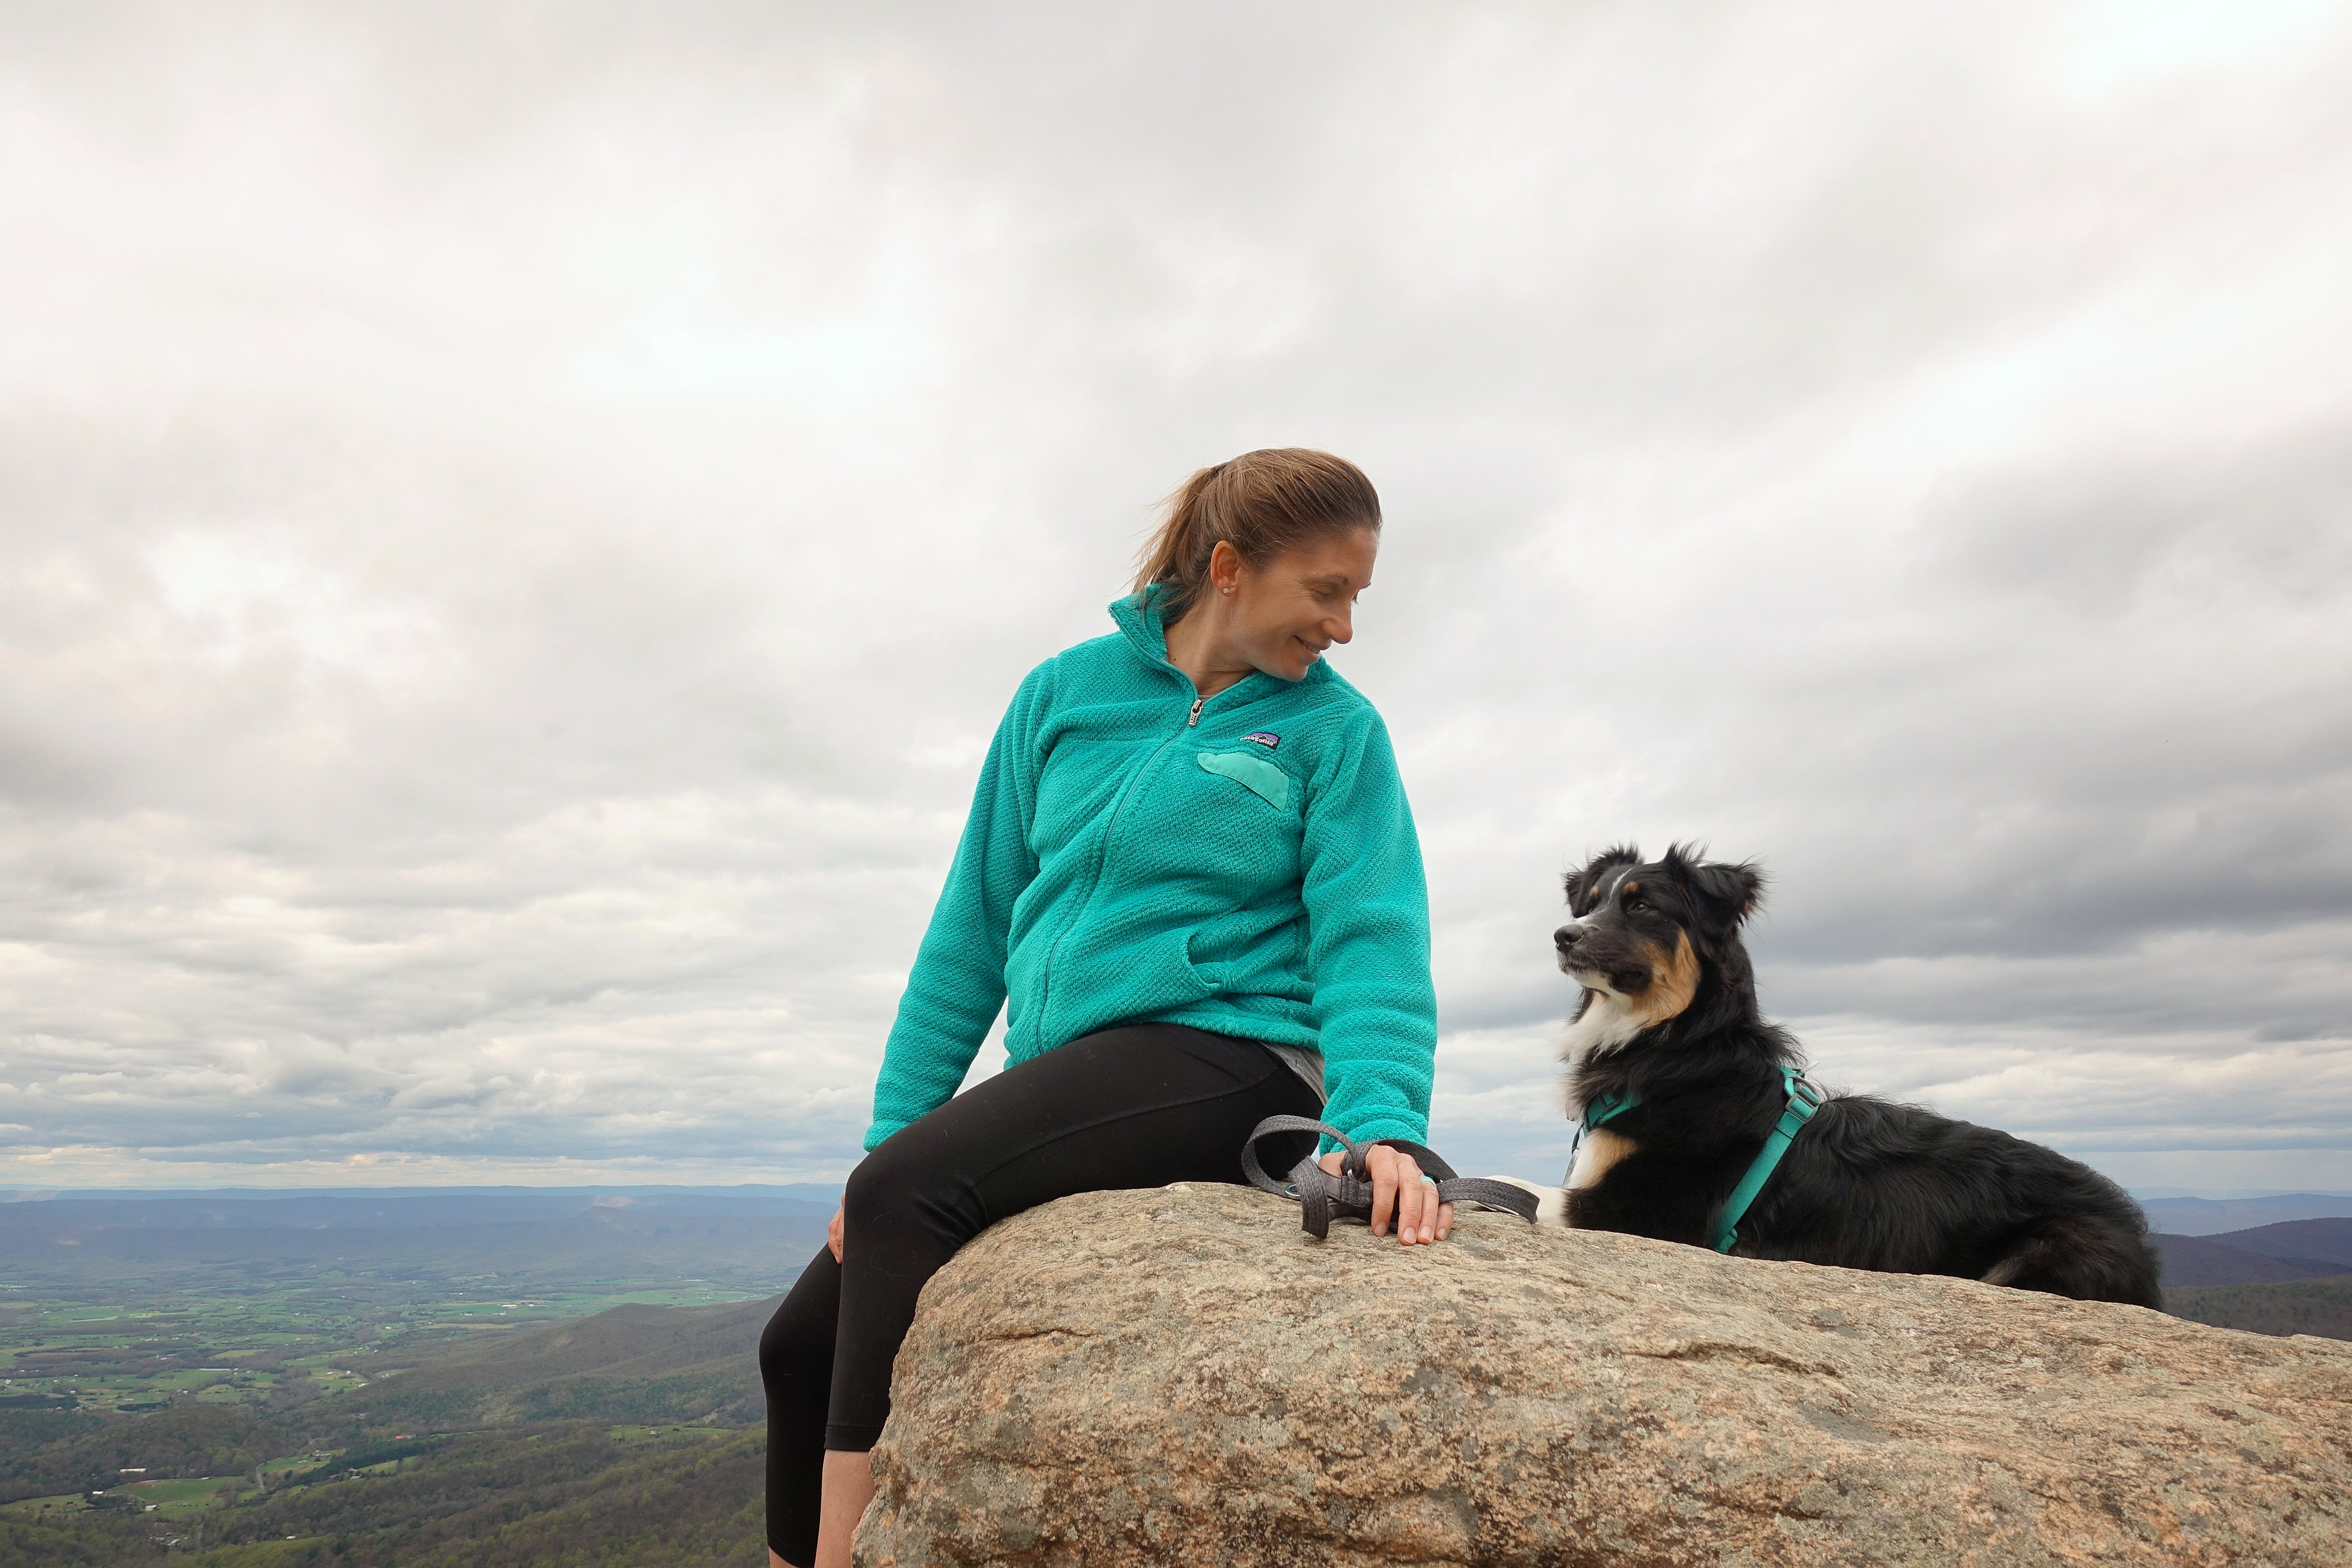 Maria and her pup sitting up on a viewpoint.